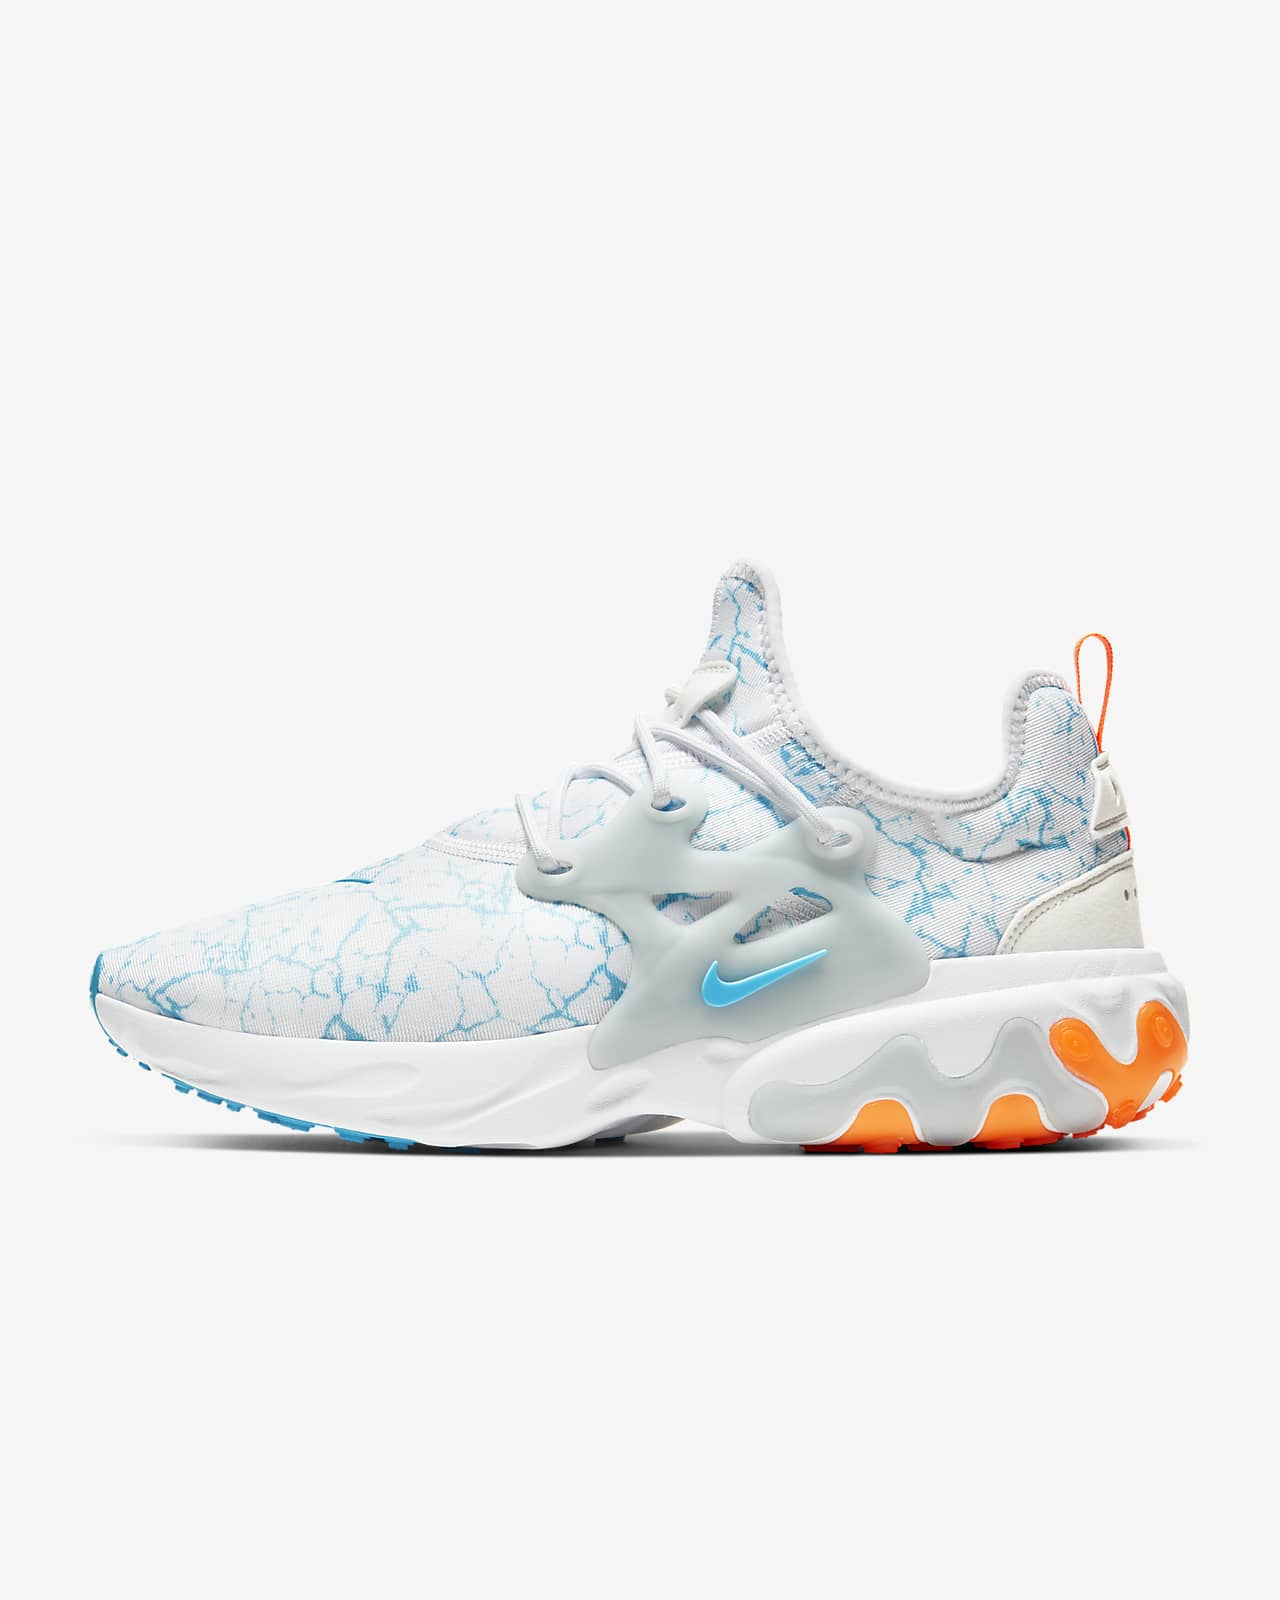 Nike React Presto Premium Men's Shoe